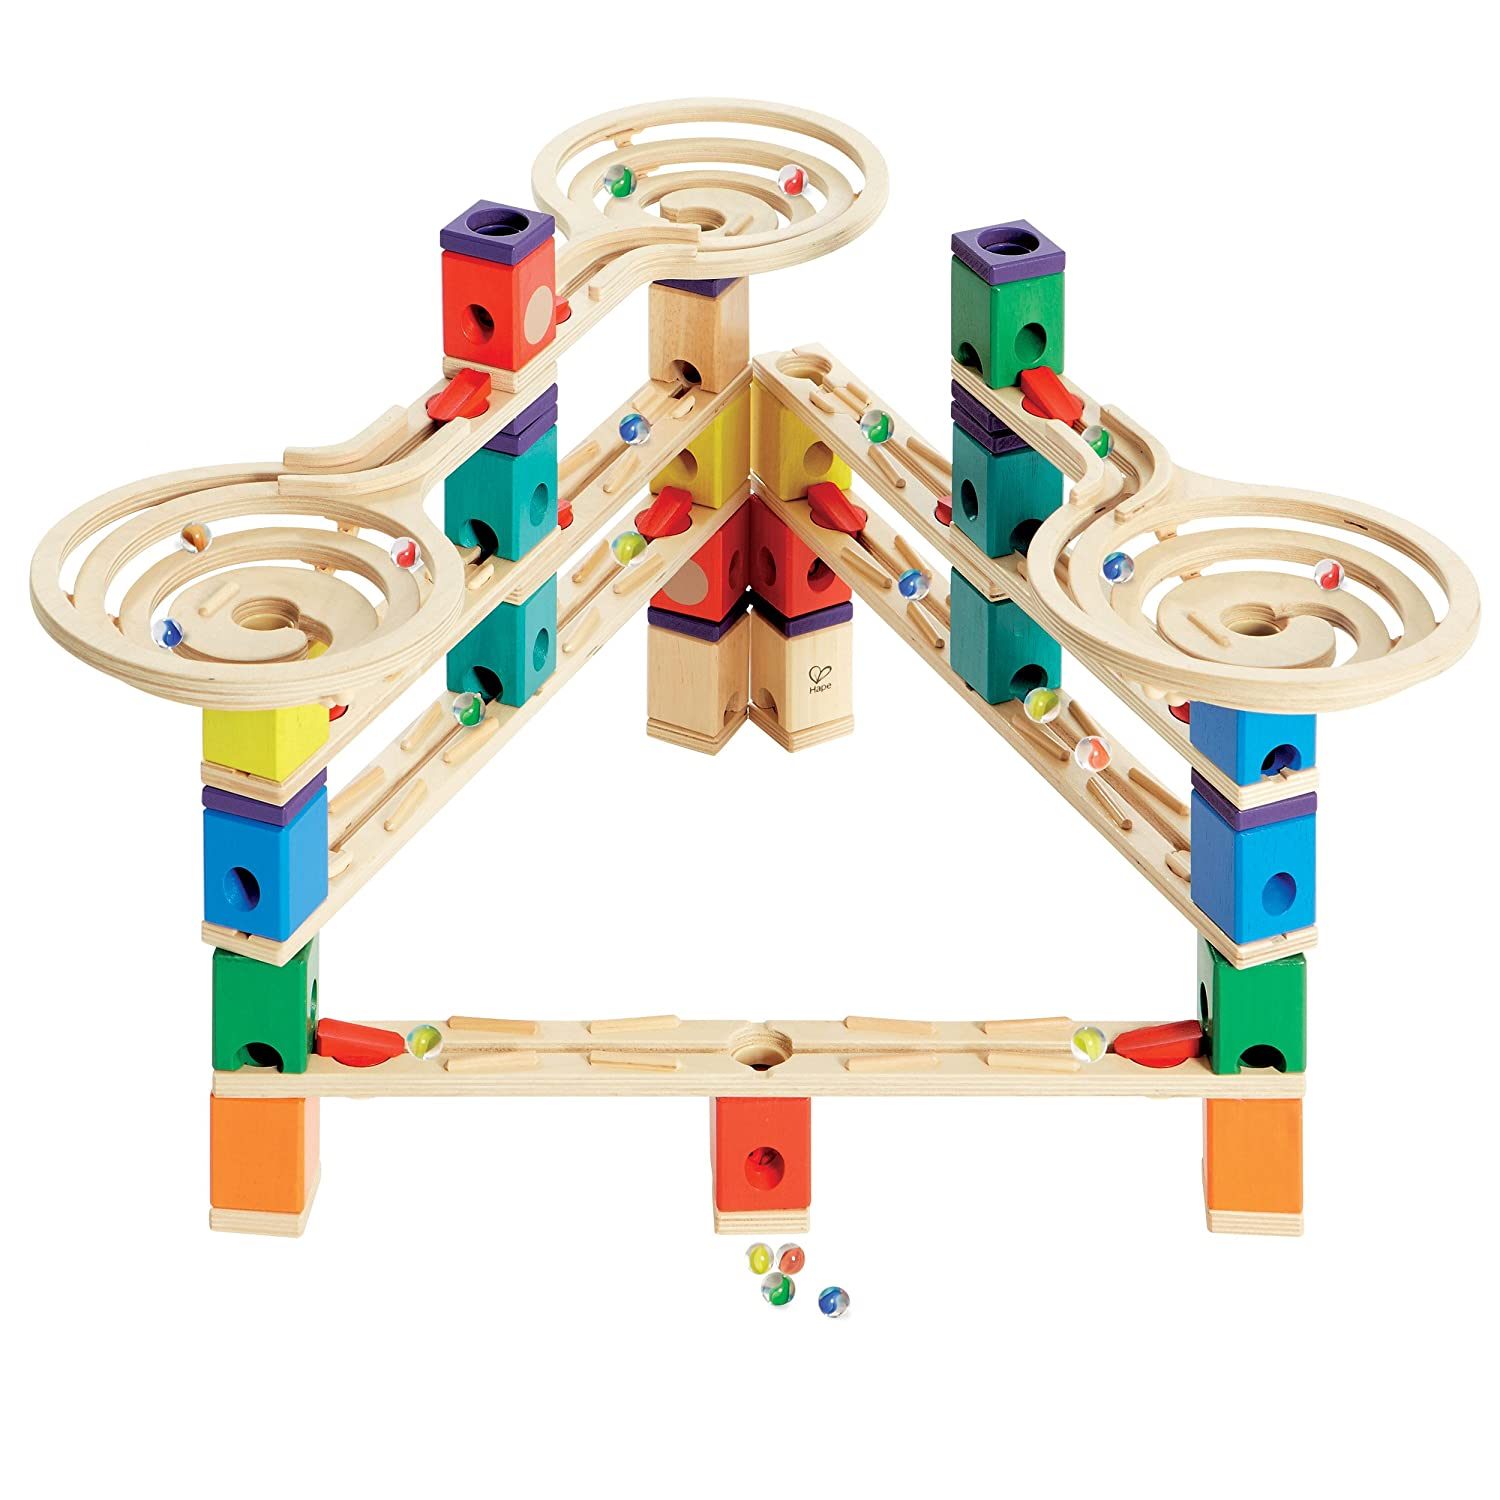 Amazon Hape Quadrilla Wooden Marble Run Construction